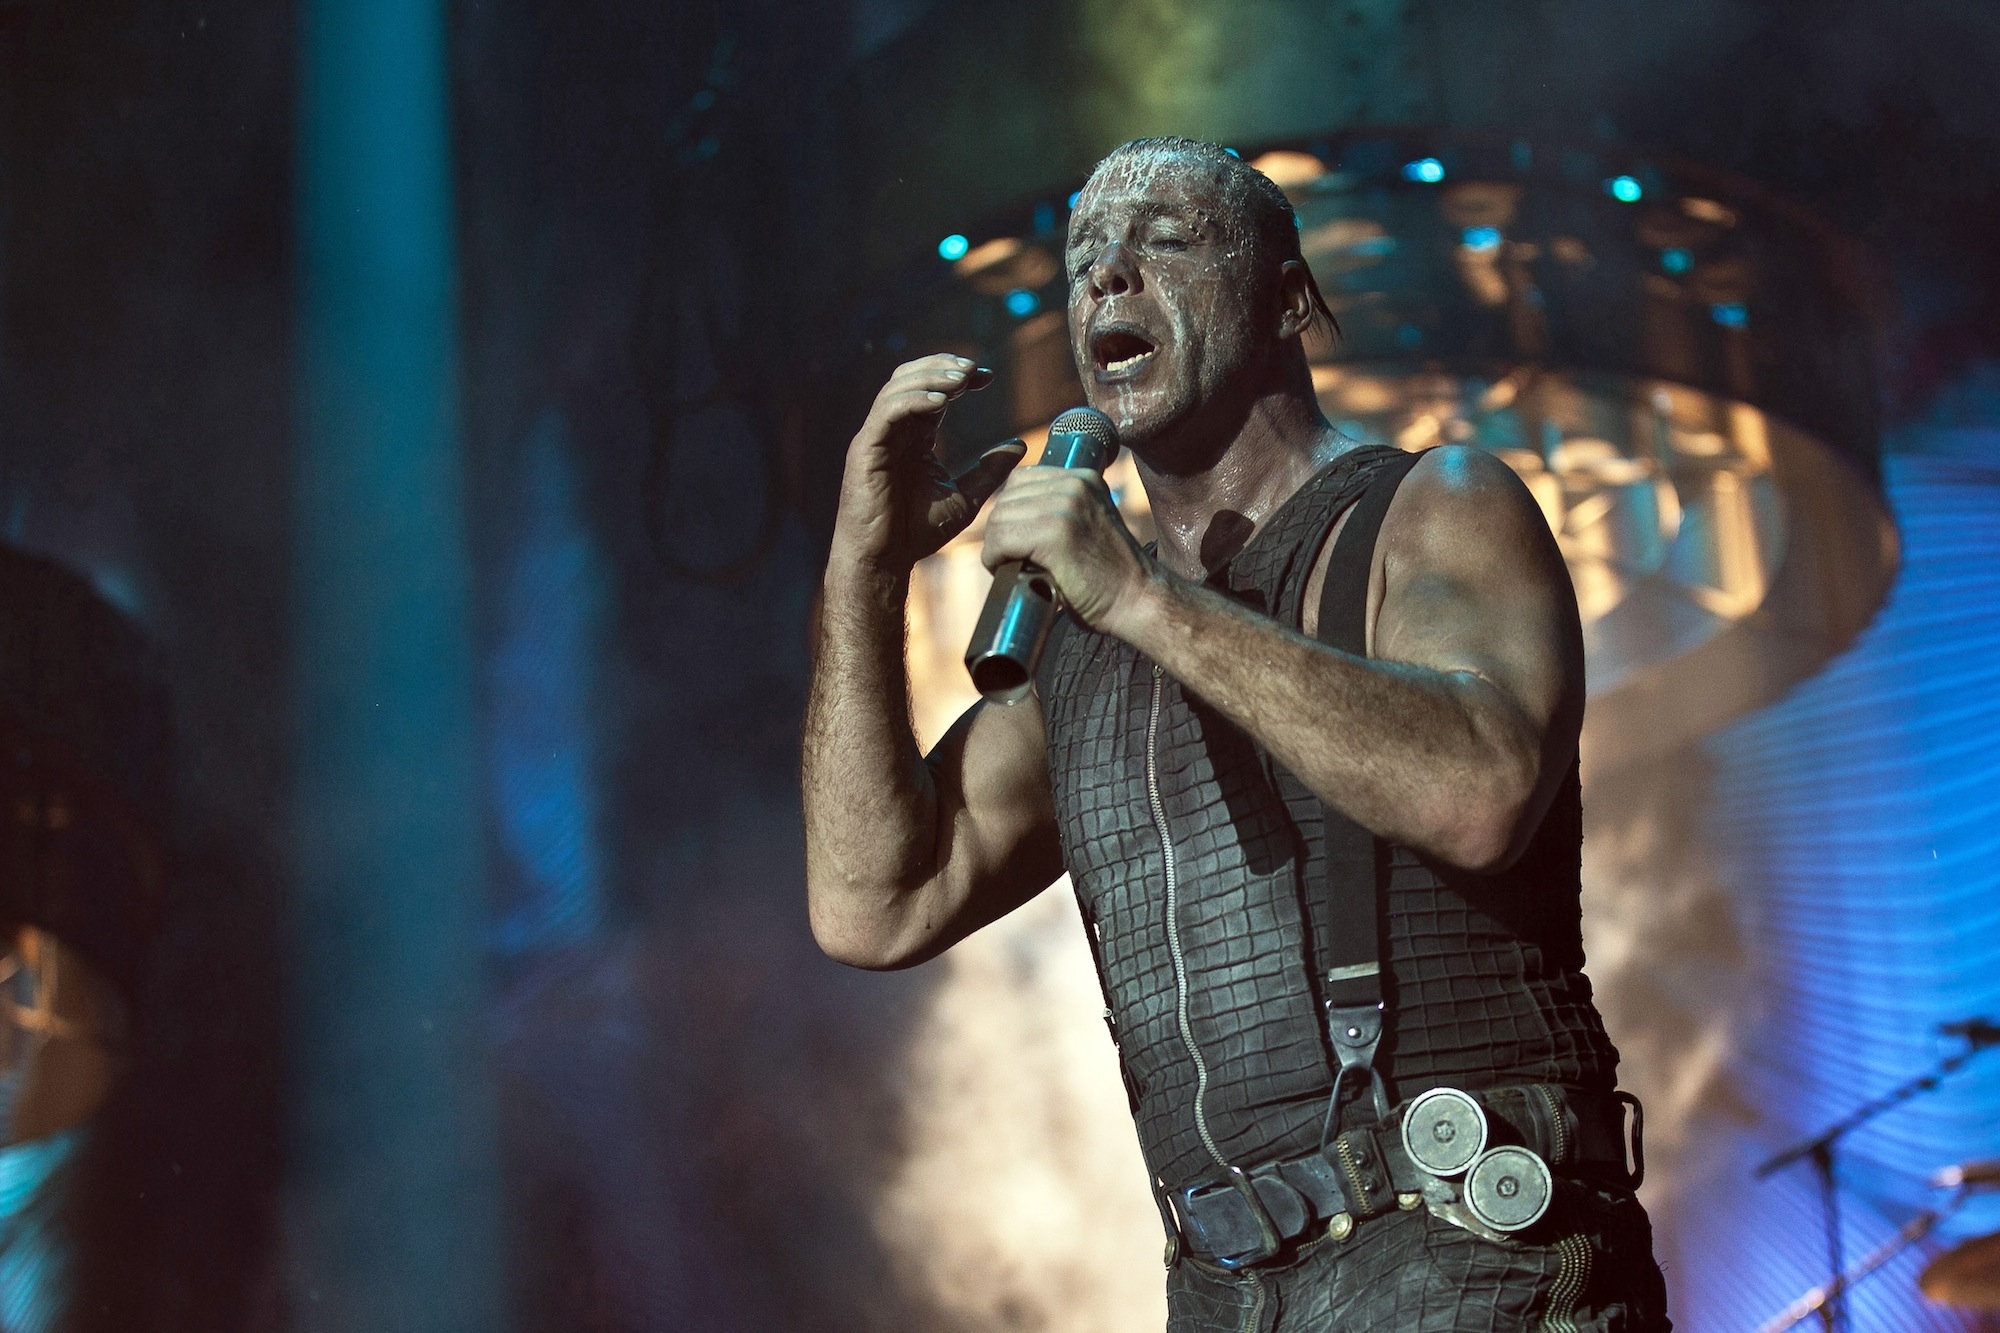 The German industrial metal band Rammstein performs a live concert at Forum in Copenhagen. Here the band?s characteristic voc